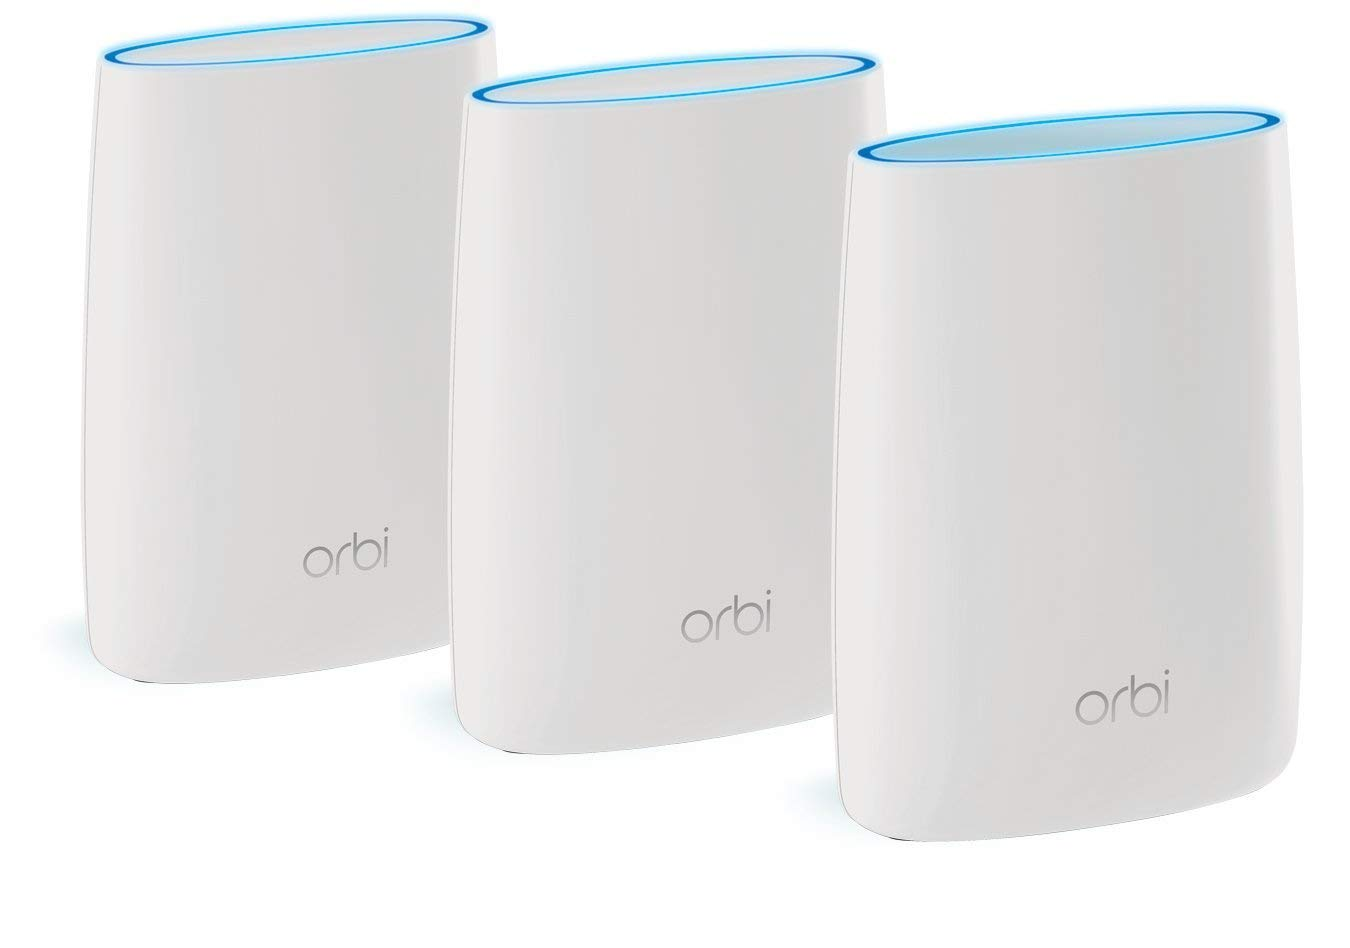 NETGEAR Orbi Ultimate Whole Home Mesh Wi-Fi System (Router + 2 Satellite Extenders)